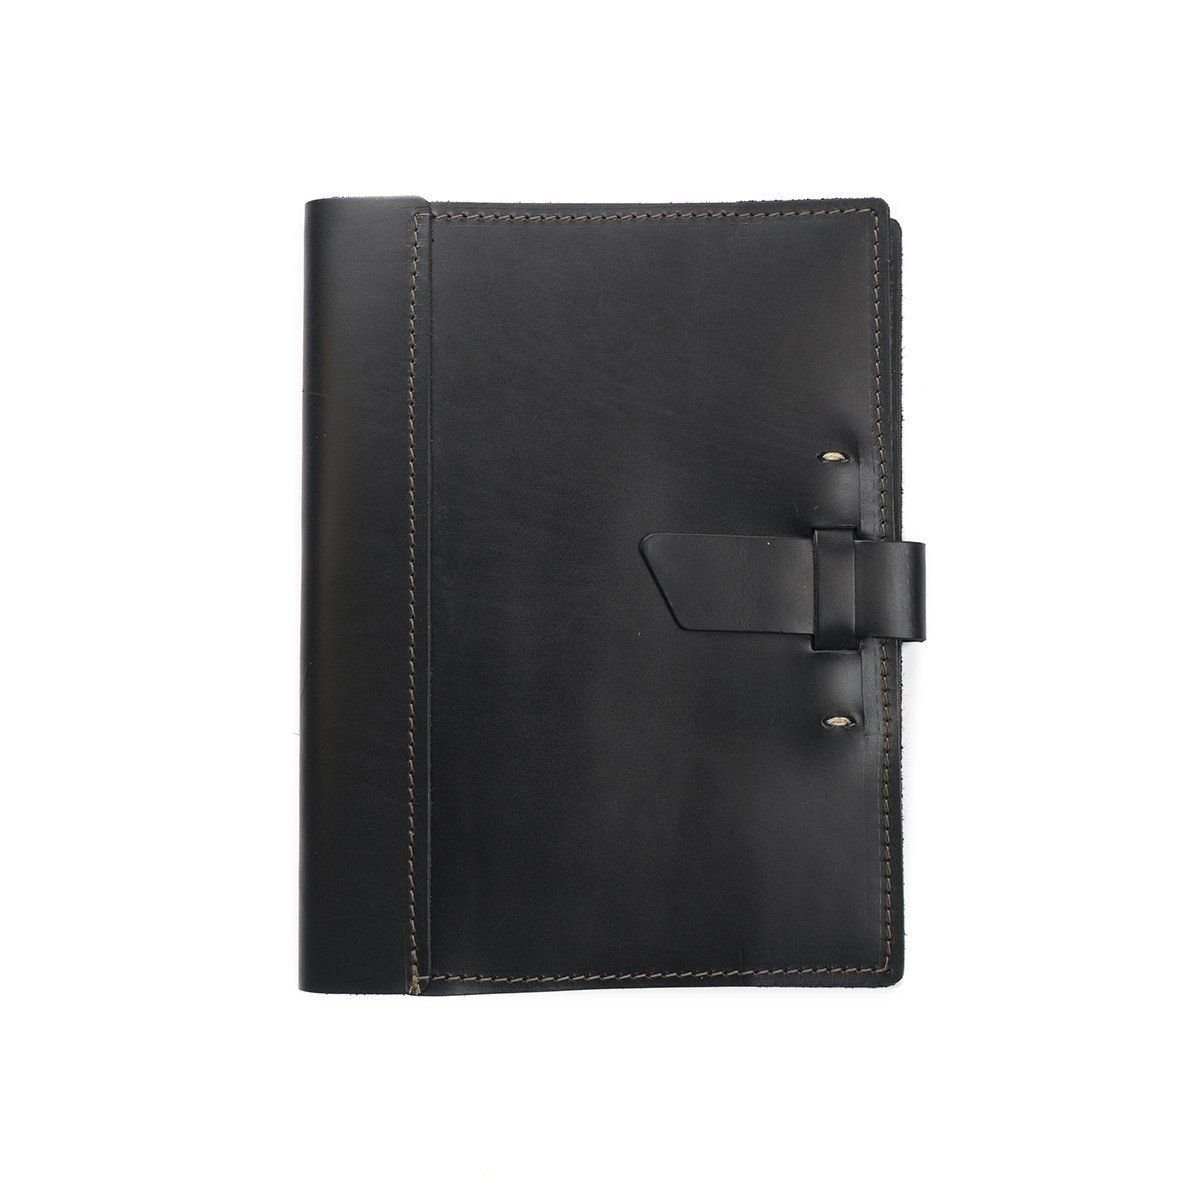 Large Leather Composition Notebook Cover With Buckle